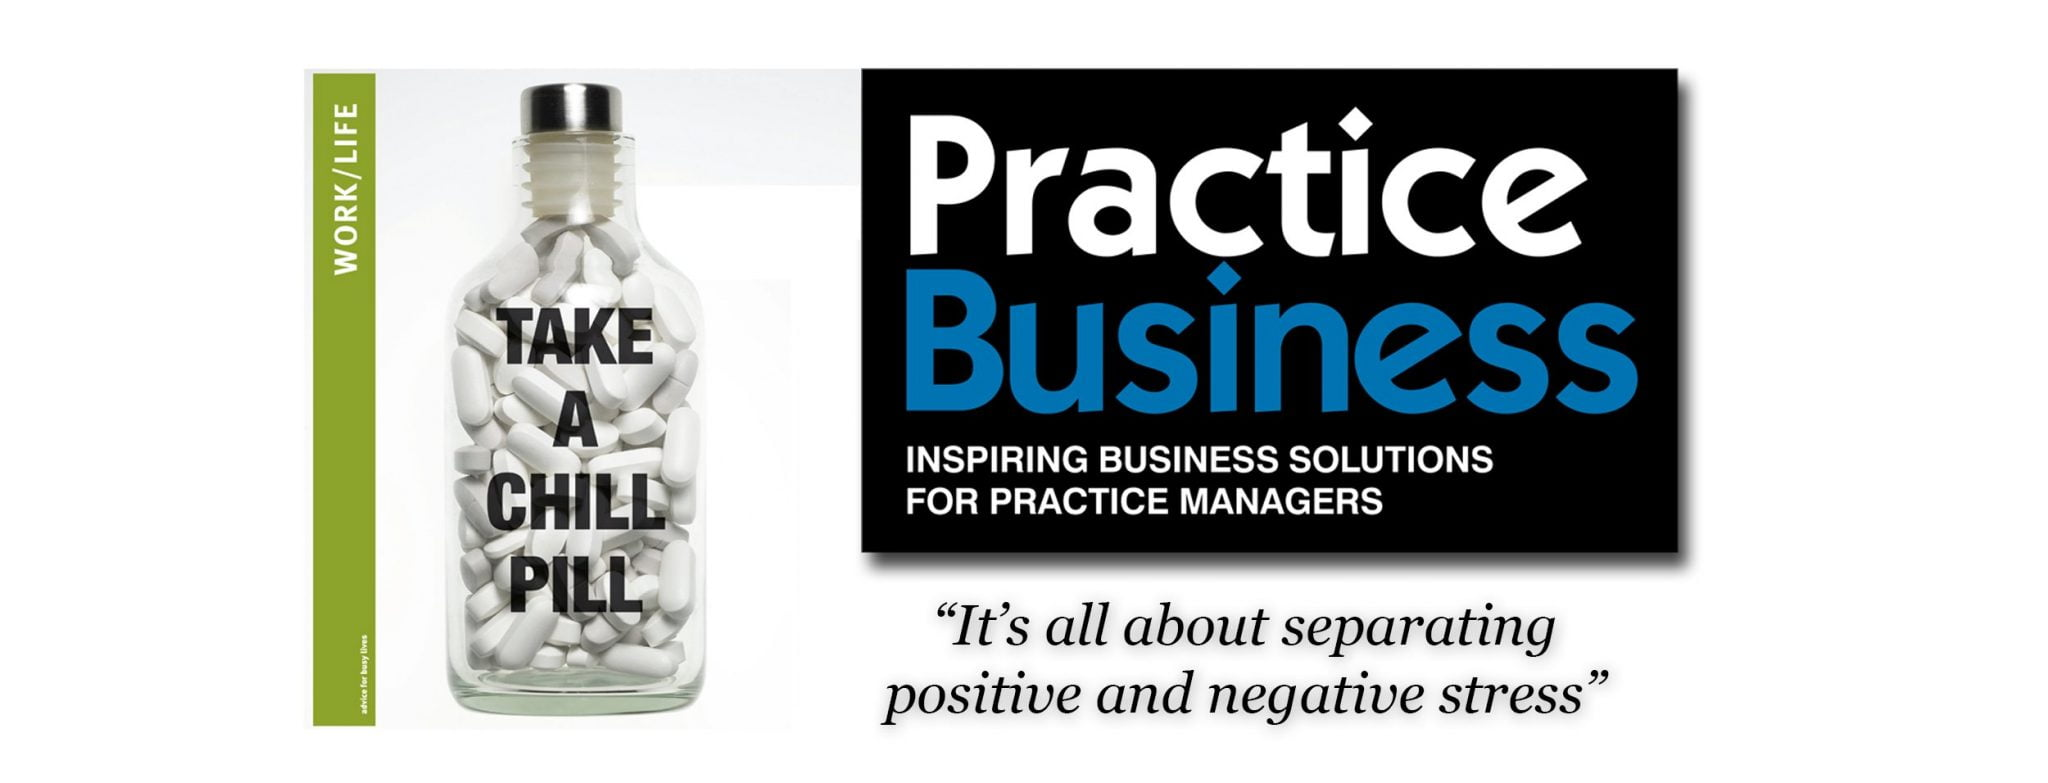 Practice_Business_Positive_Negative_Stress